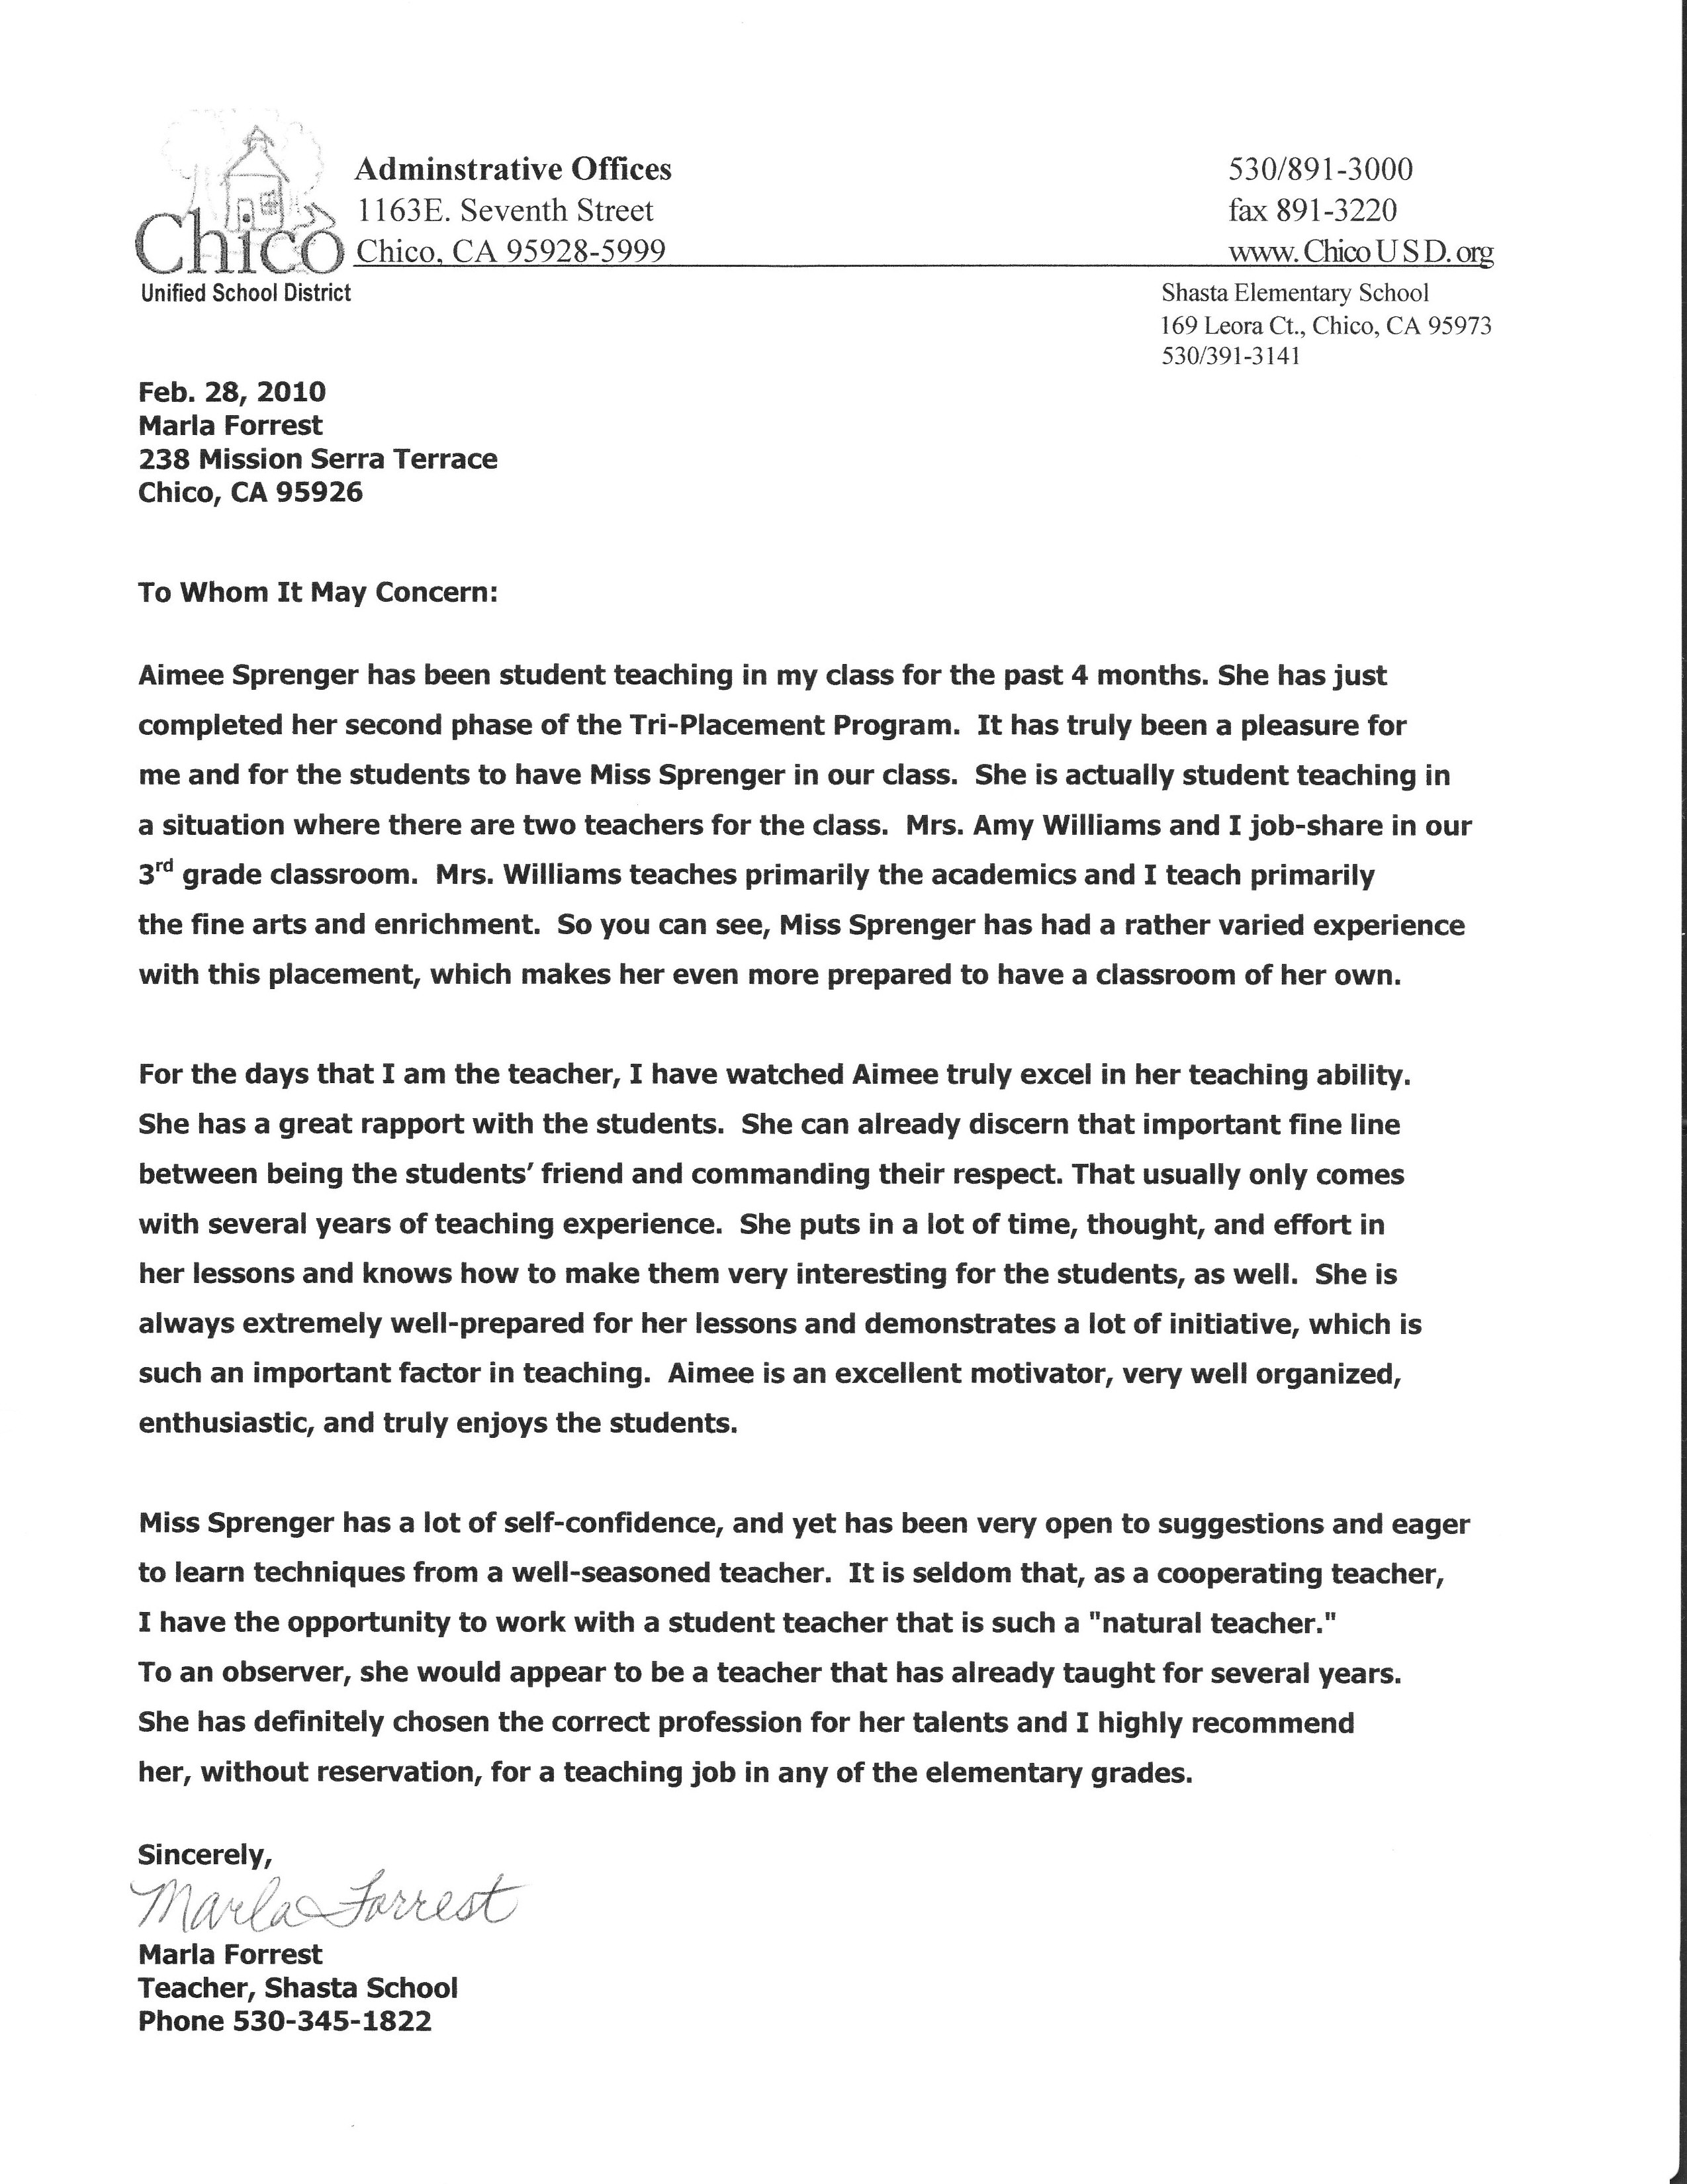 Recommendation Letter For Student Teacher From Cooperating Teacher